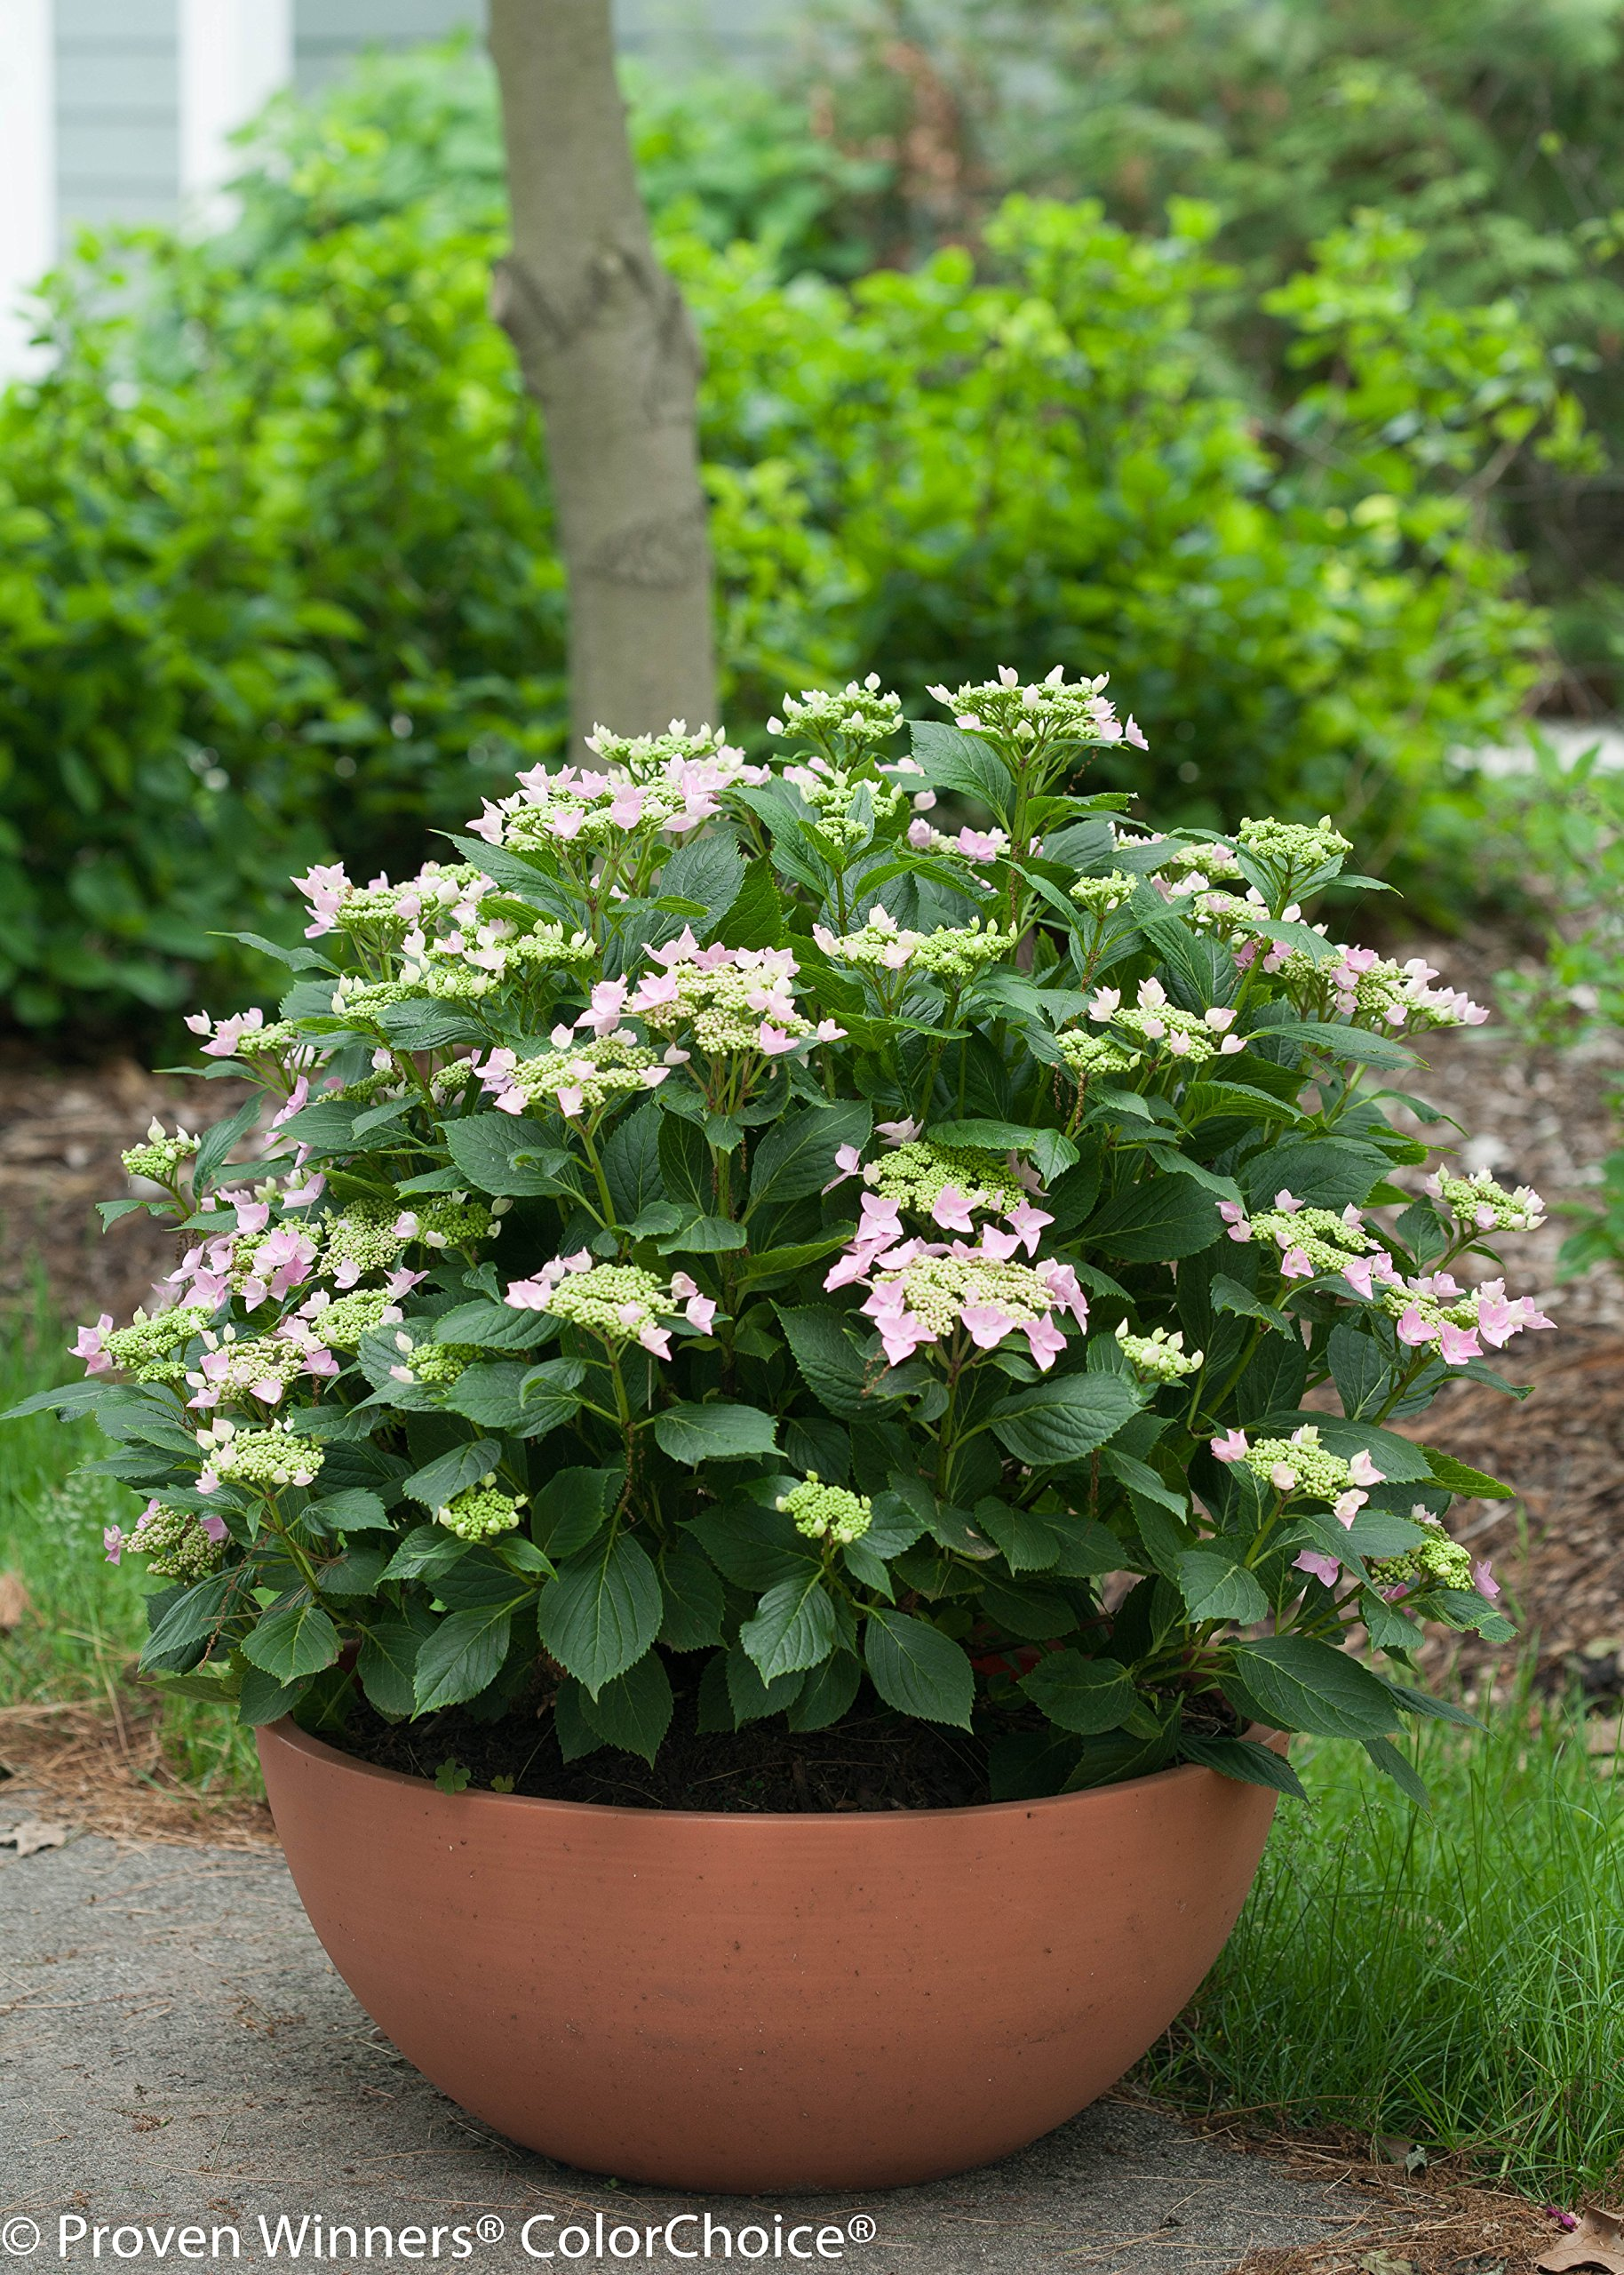 1 Gal. Let's Dance Starlight Bigleaf Hydrangea (Macrophylla) Live Shrub, Blue or Pink Flowers by Proven Winners (Image #8)